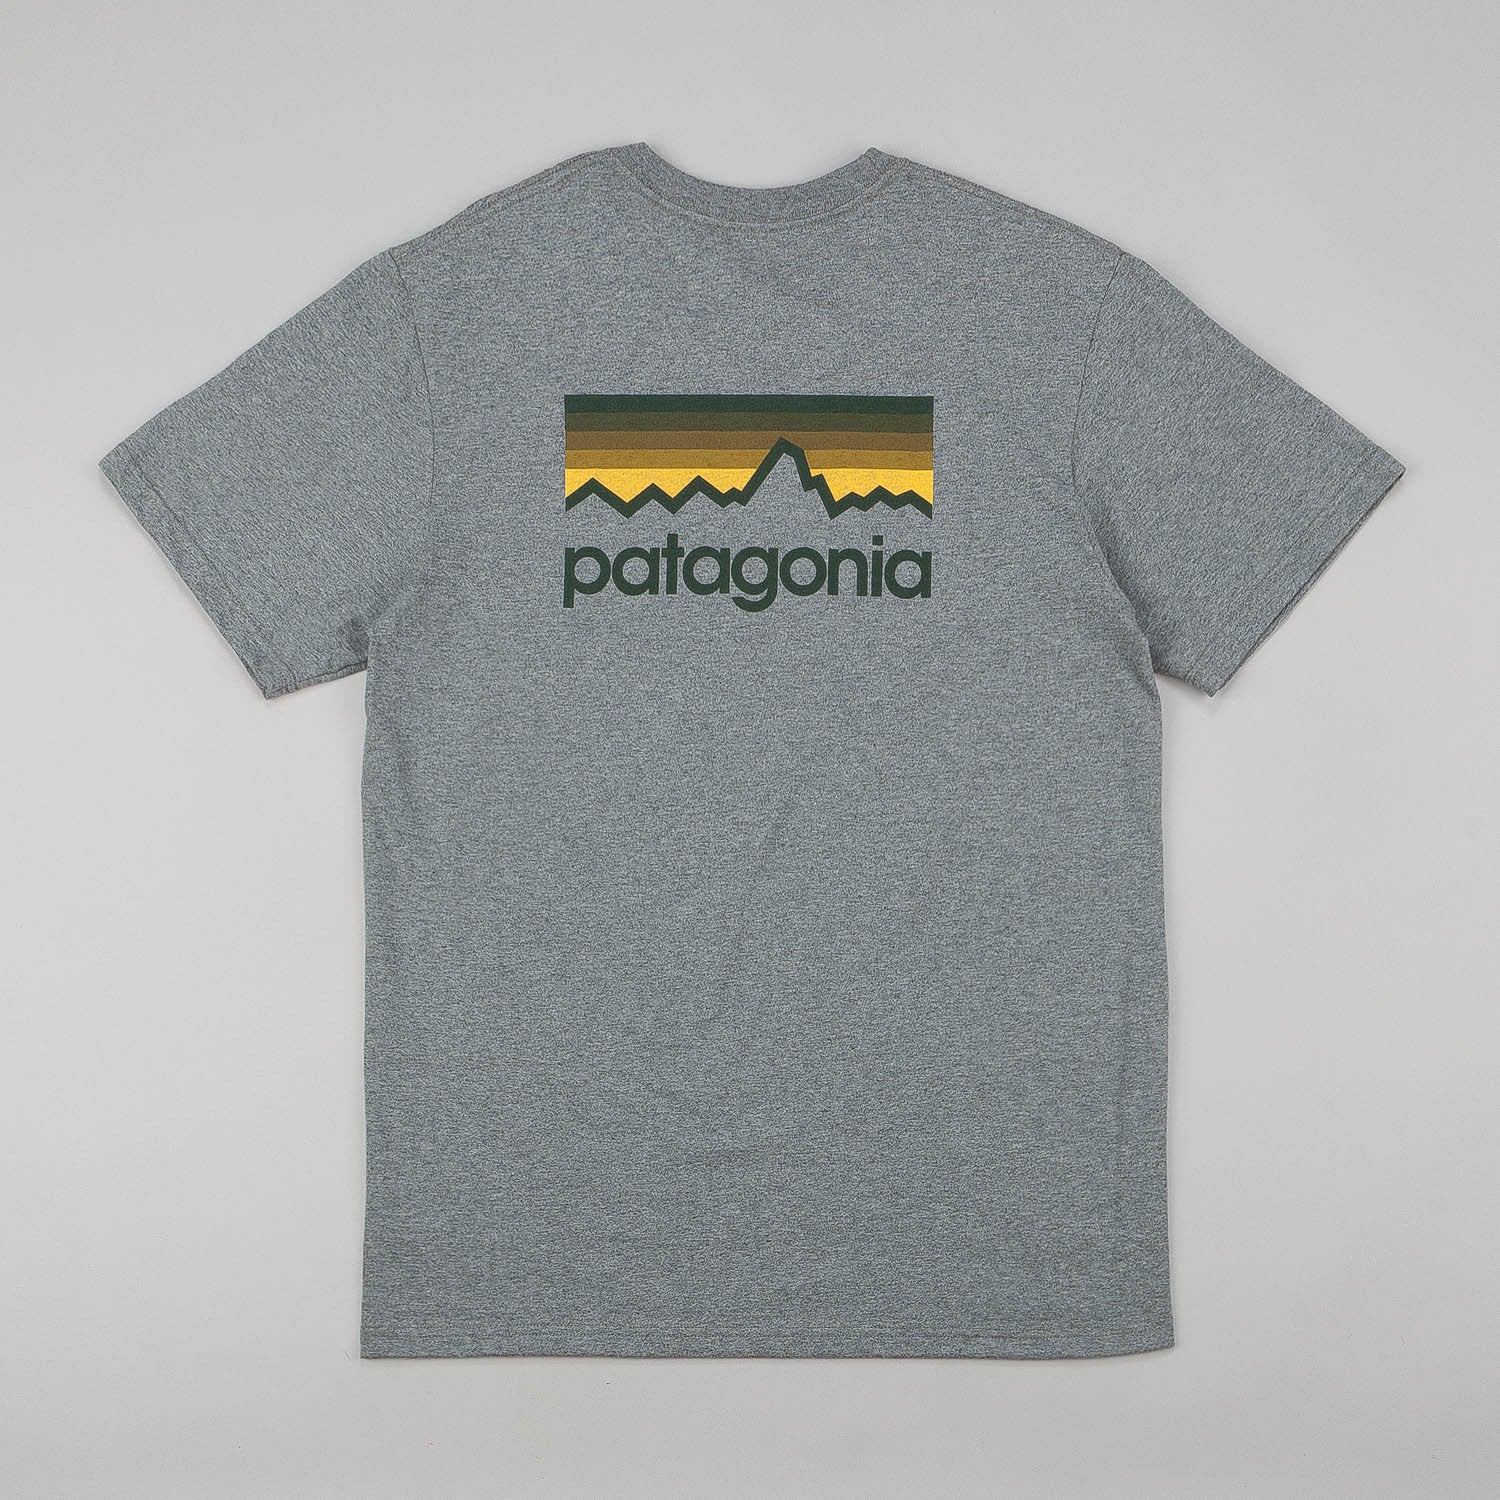 Patagonia Line Logo T-Shirt - Gravel Heather